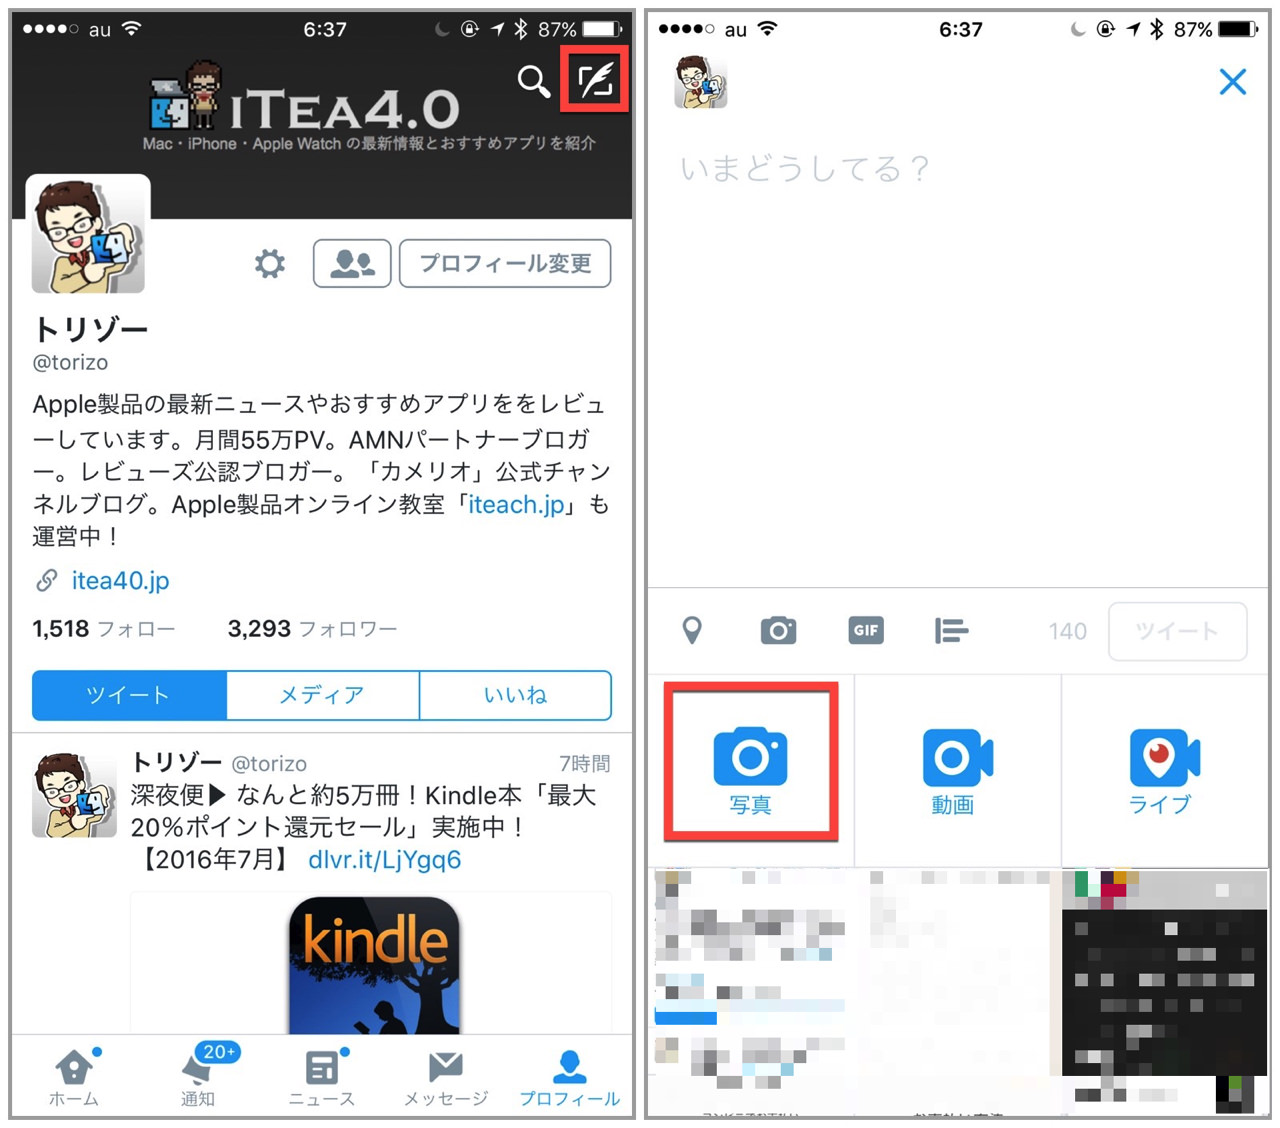 How to use the stamp of twitter2